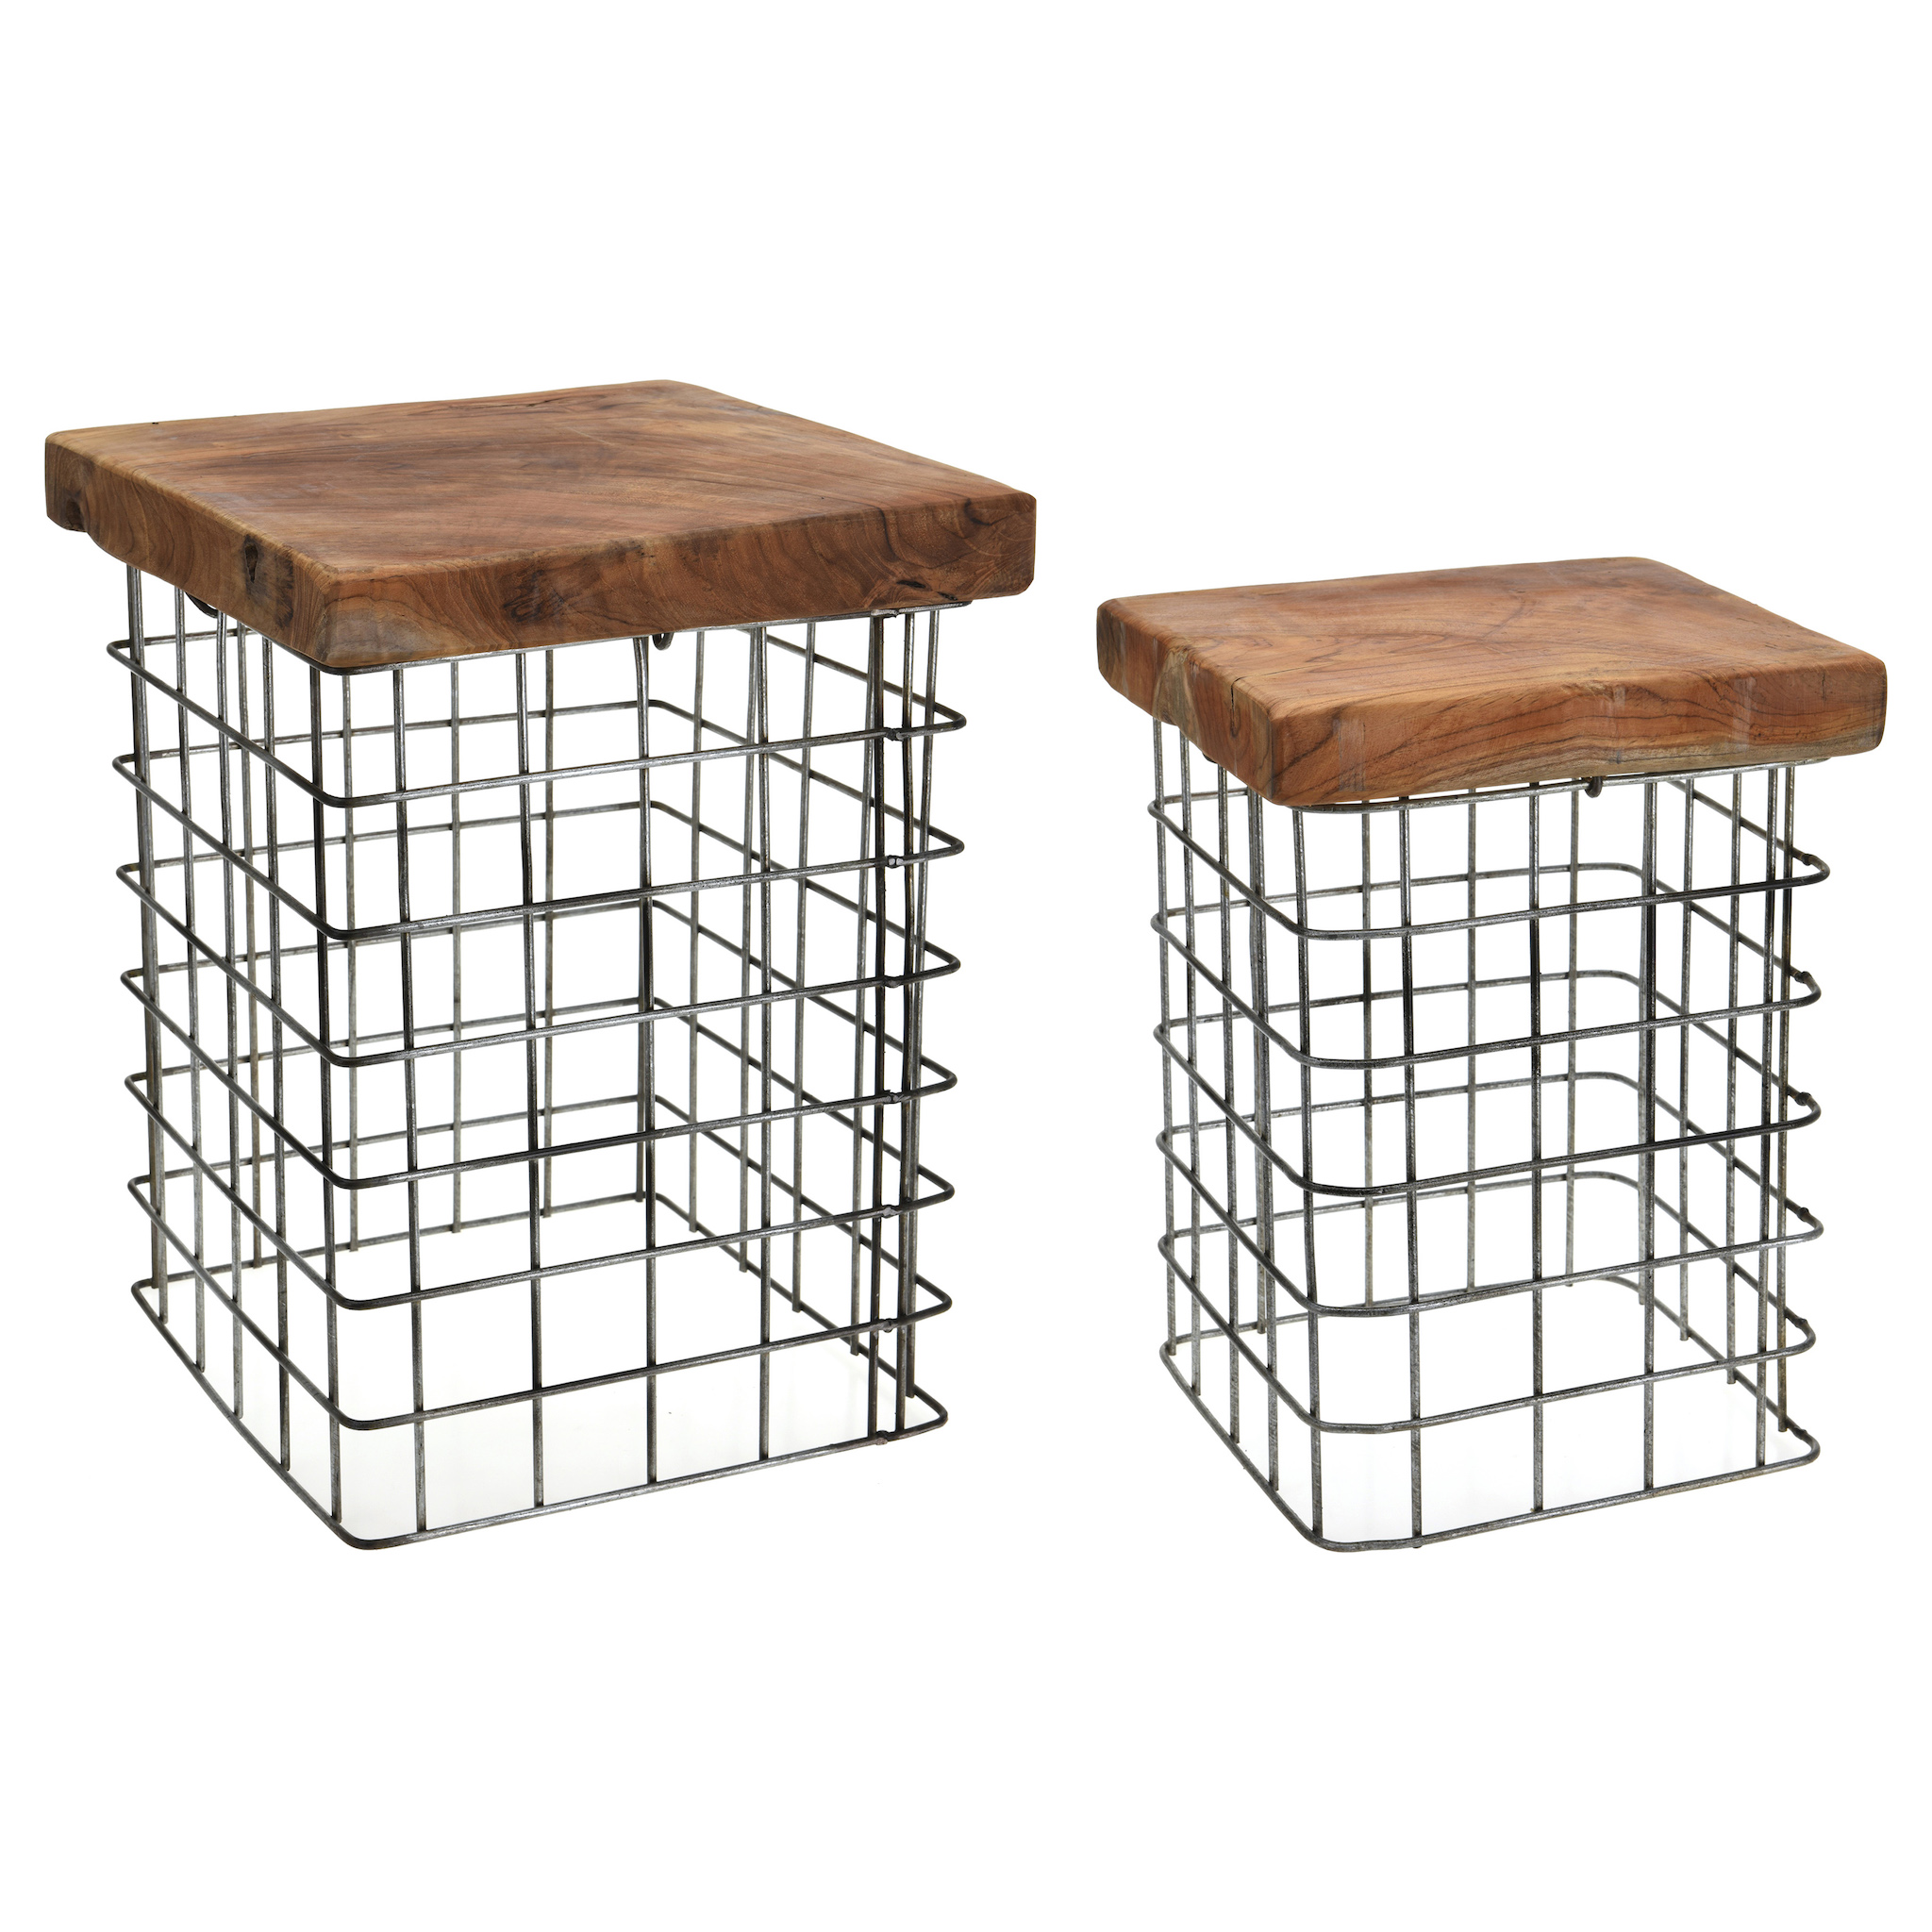 Set of 2 Square Teakwood stools